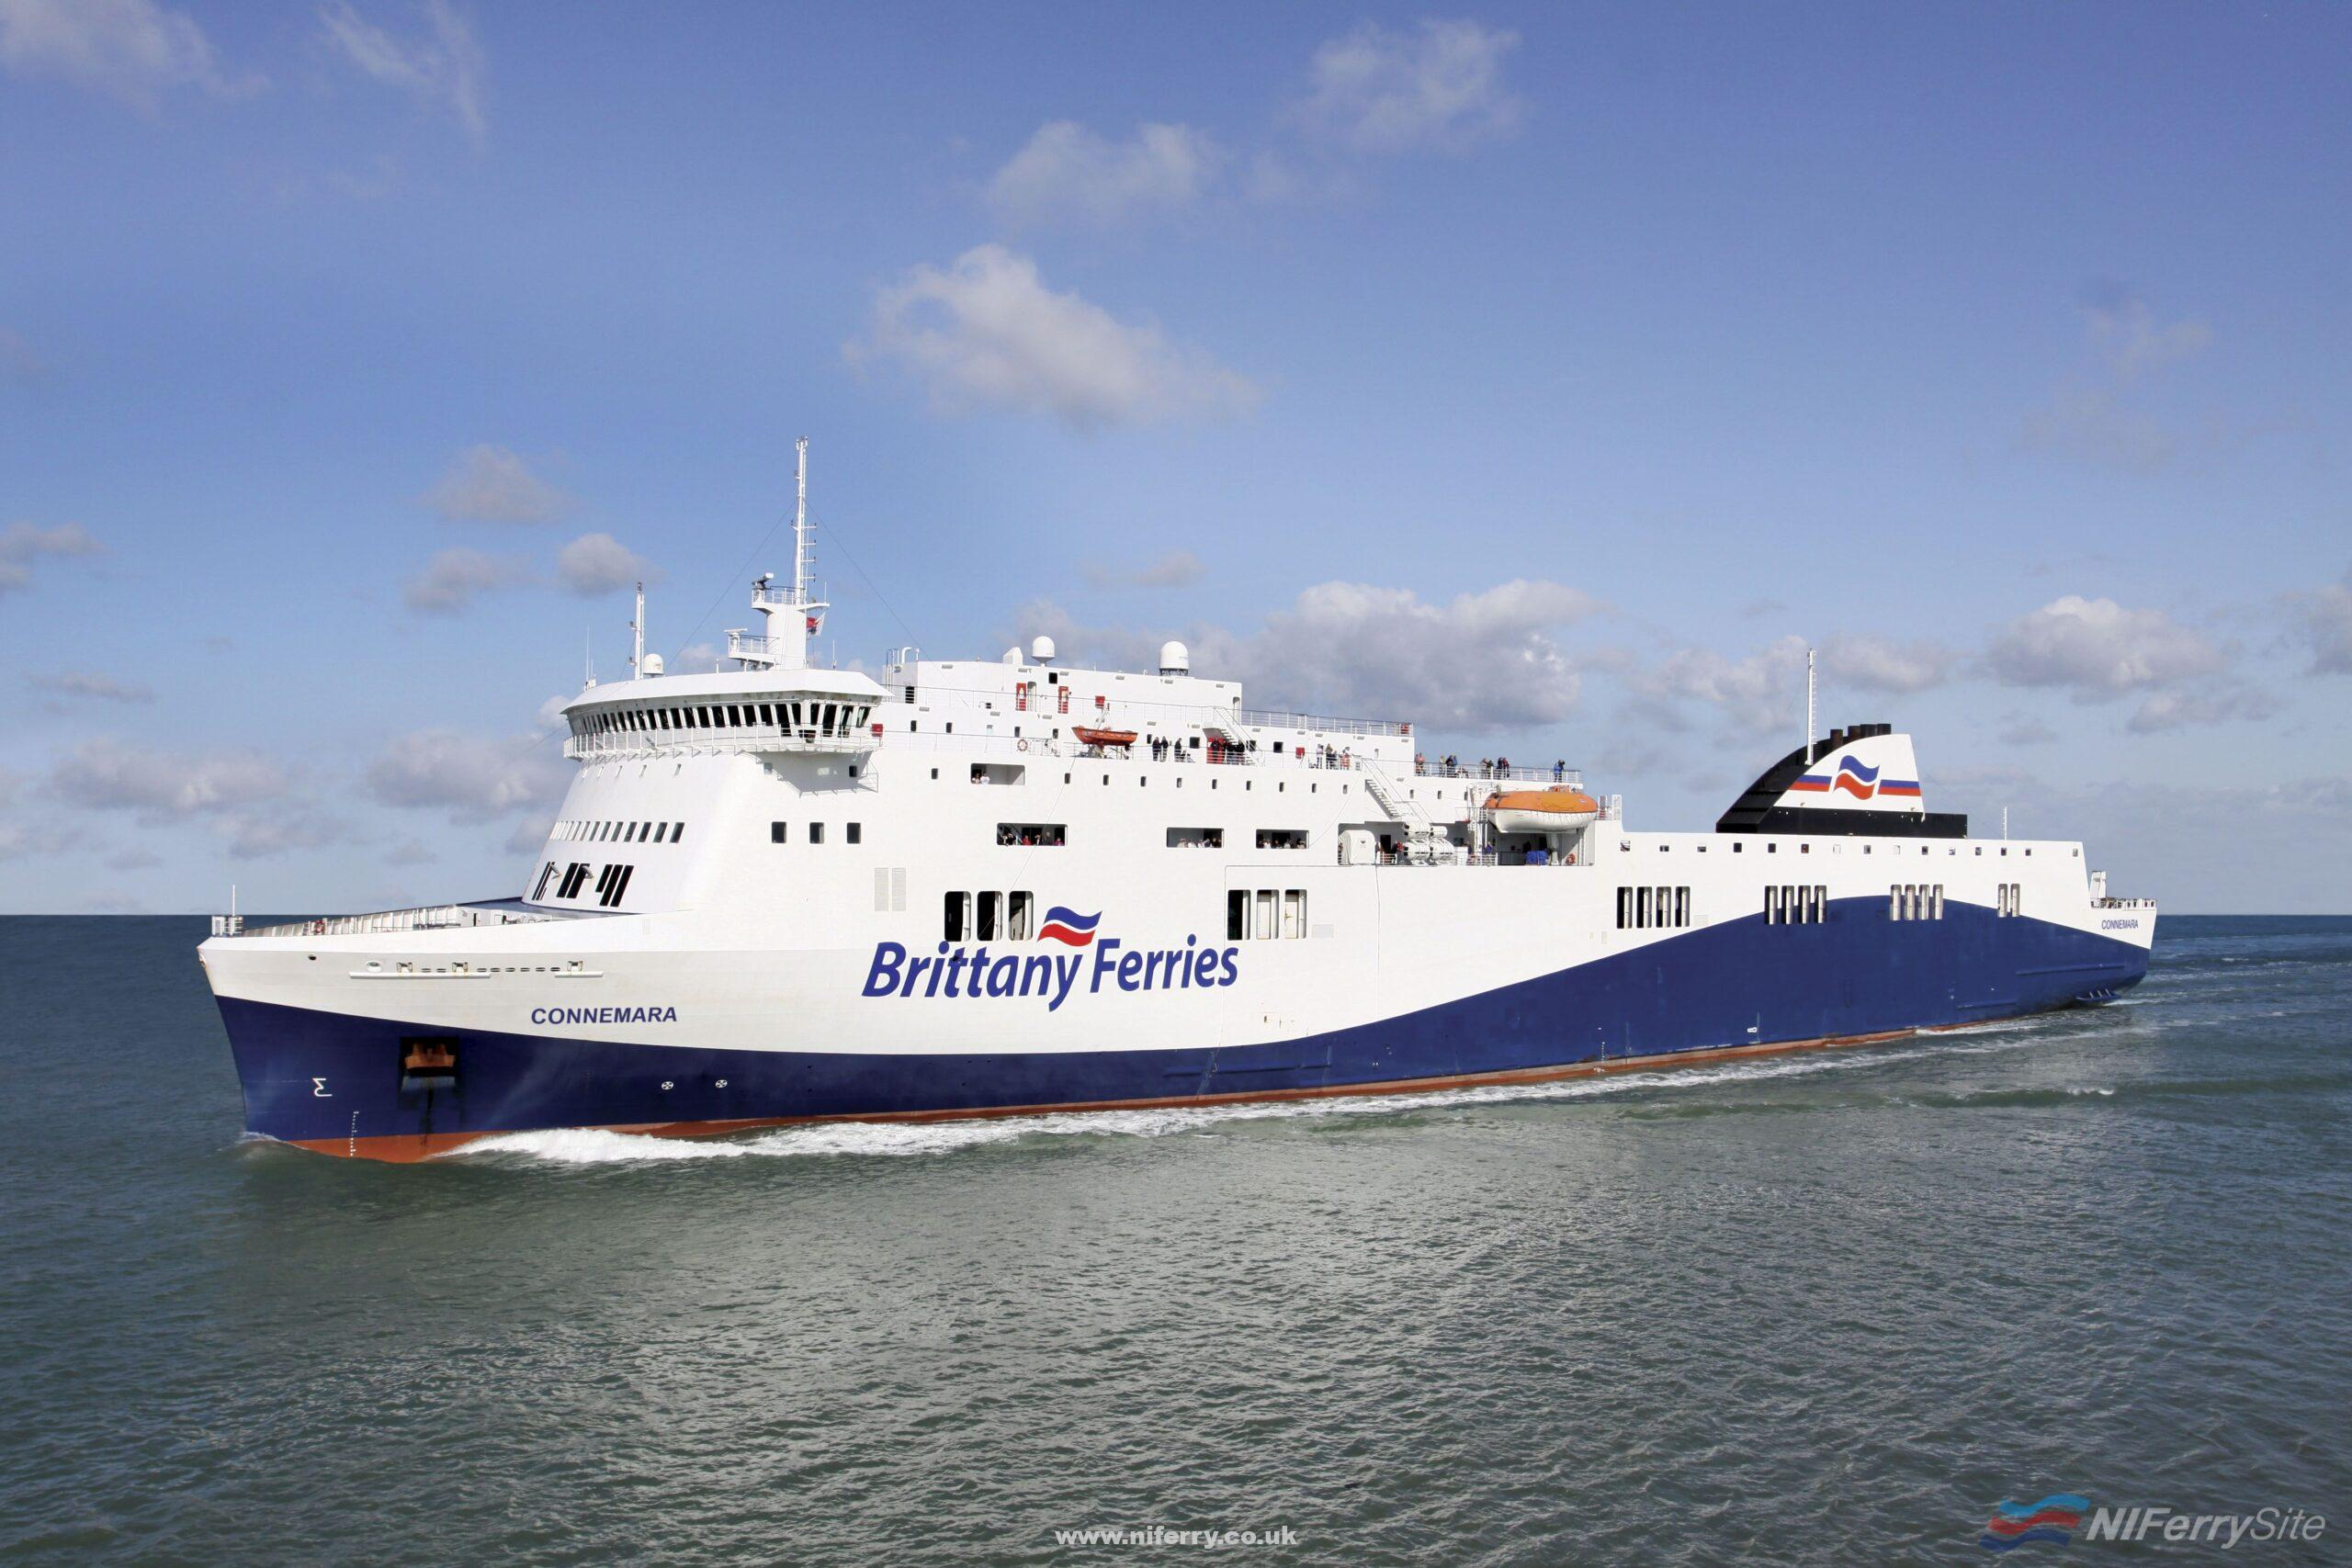 An artists impression of Brittany Ferries Cork - Santander vessel CONNEMARA. Brittany Ferries.